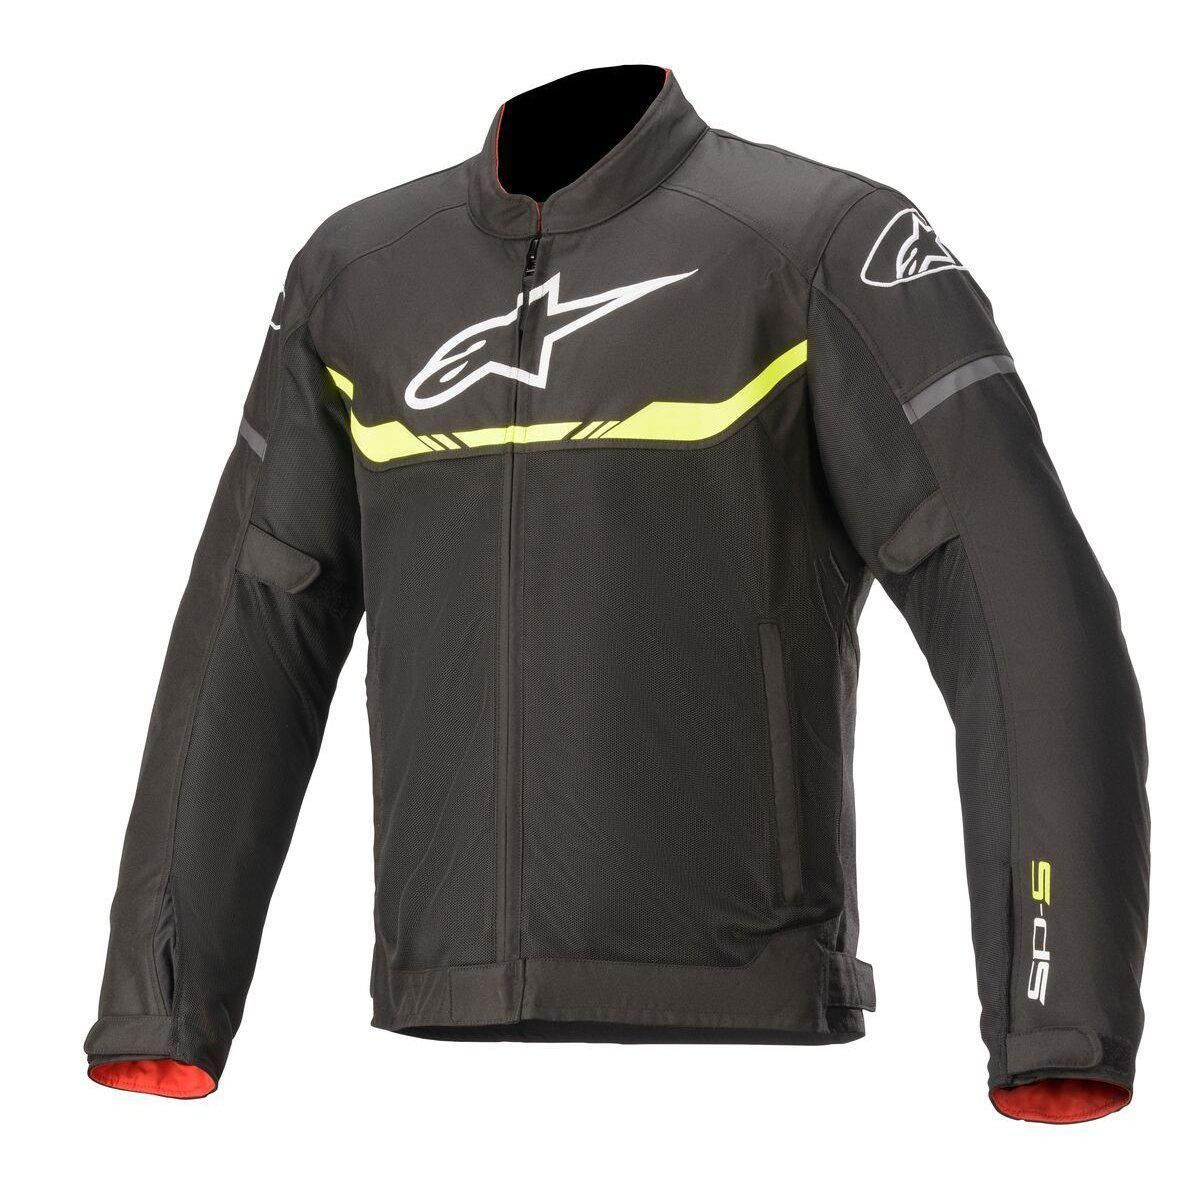 ALPINESTARS T-SP S AIR JACKET - BLACK YELLOW FLUO